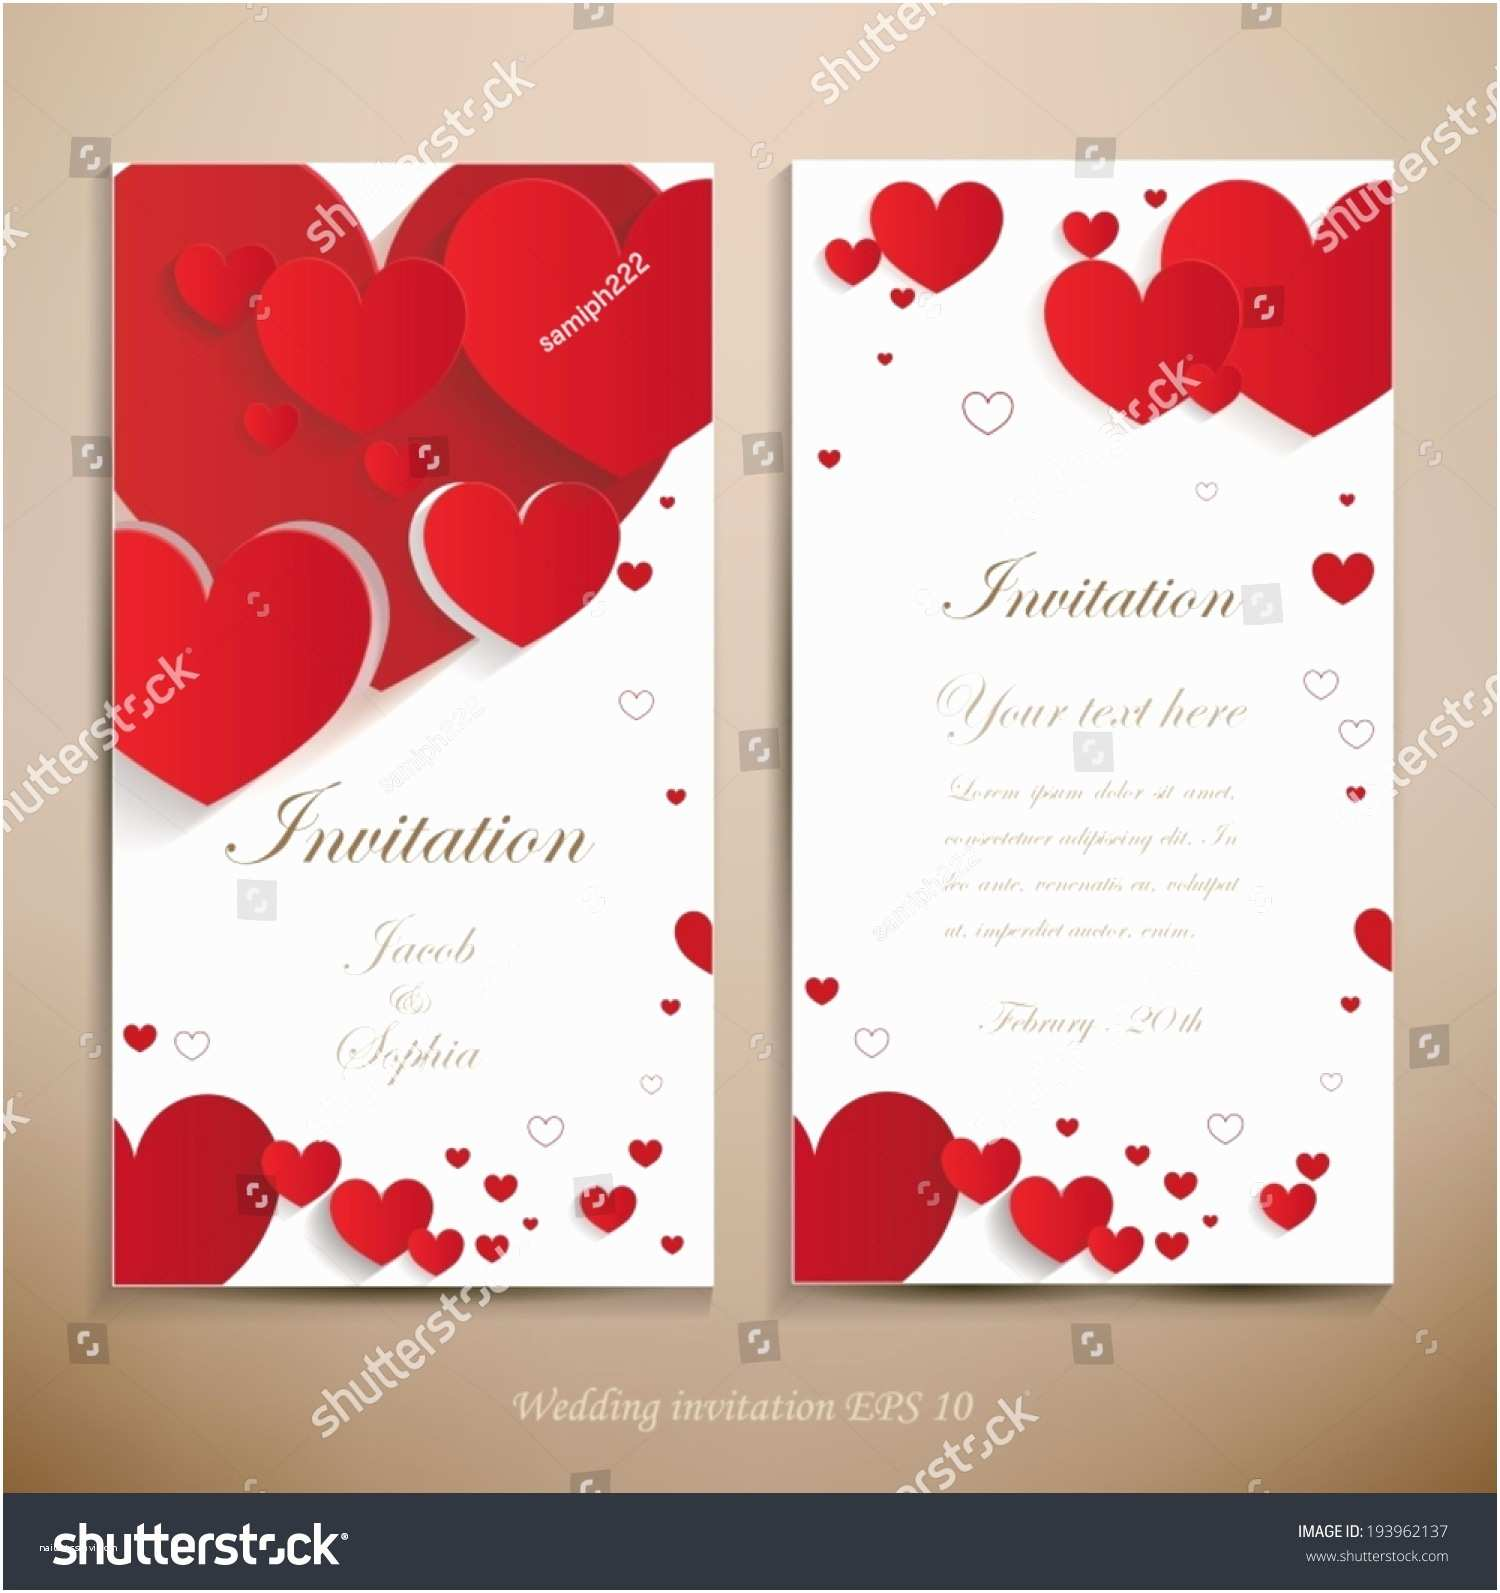 Red and White Wedding Invitations Lovely Wedding Invitation A Beautiful Wedding Invitation